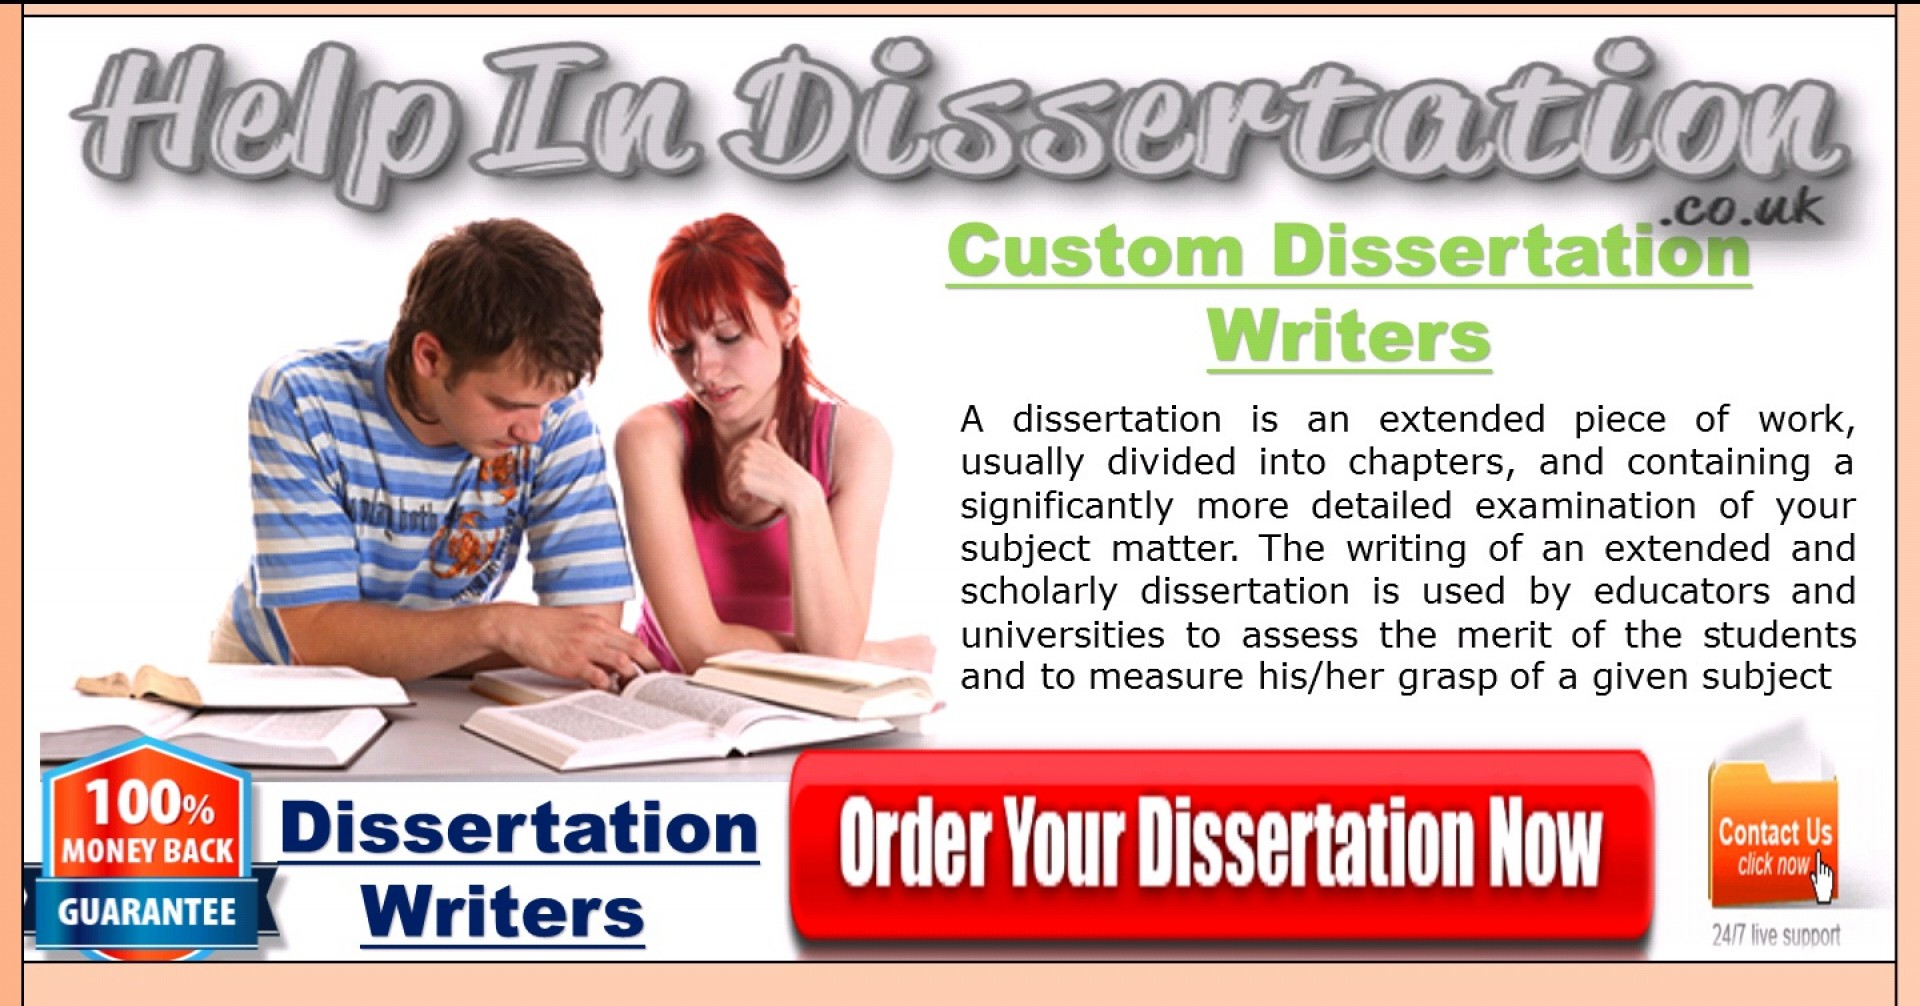 008 Custom University Essay Writing Website Online Example Impressive Service Reviews In India Services Australia 1920